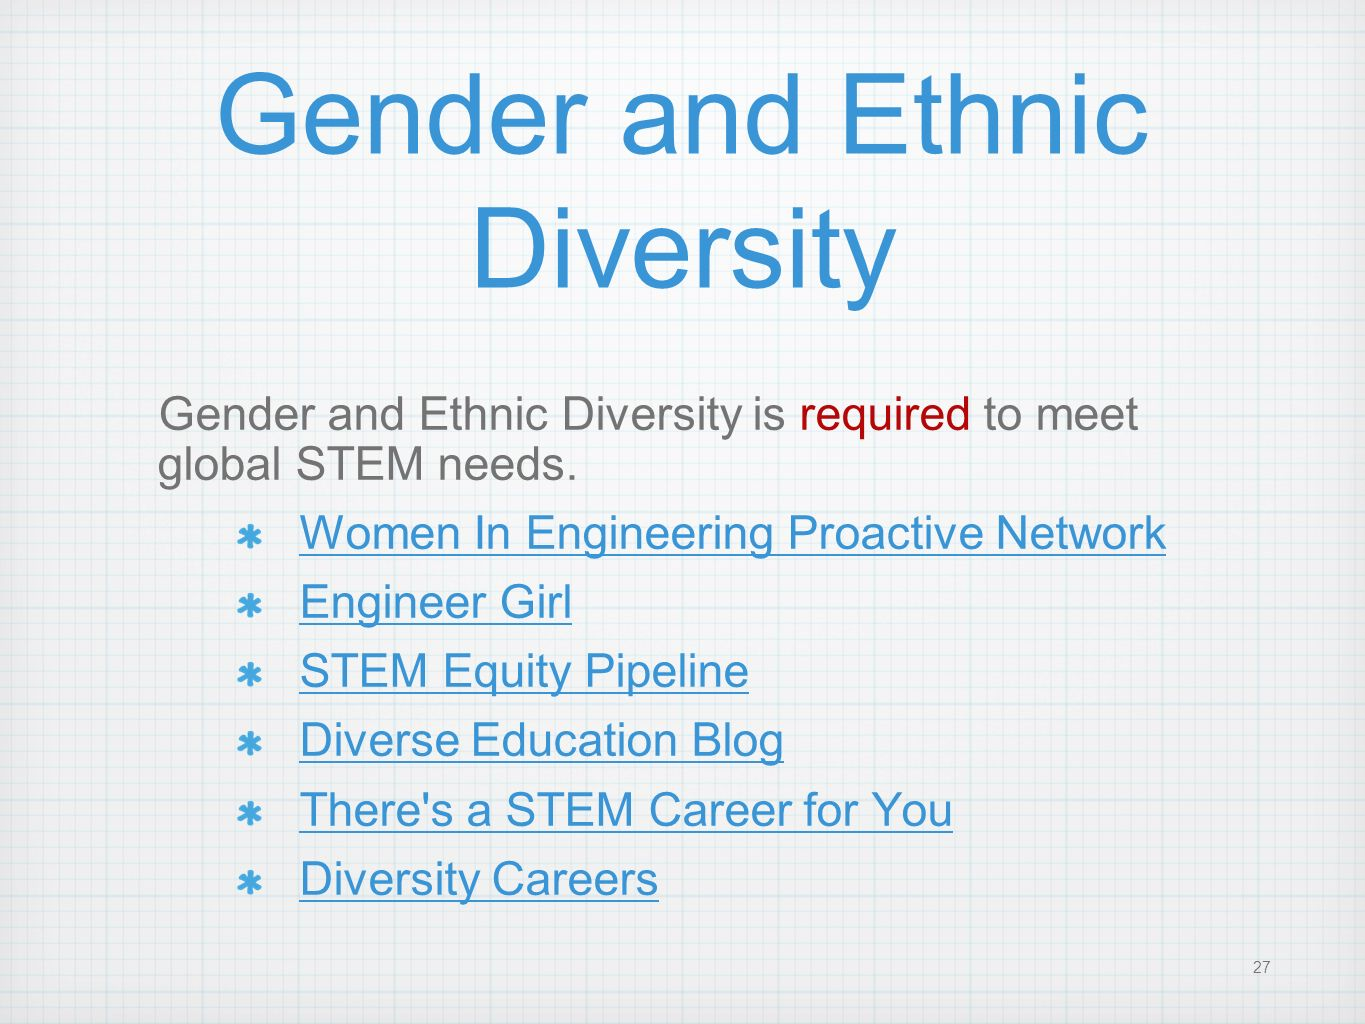 Gender and Ethnic Diversity